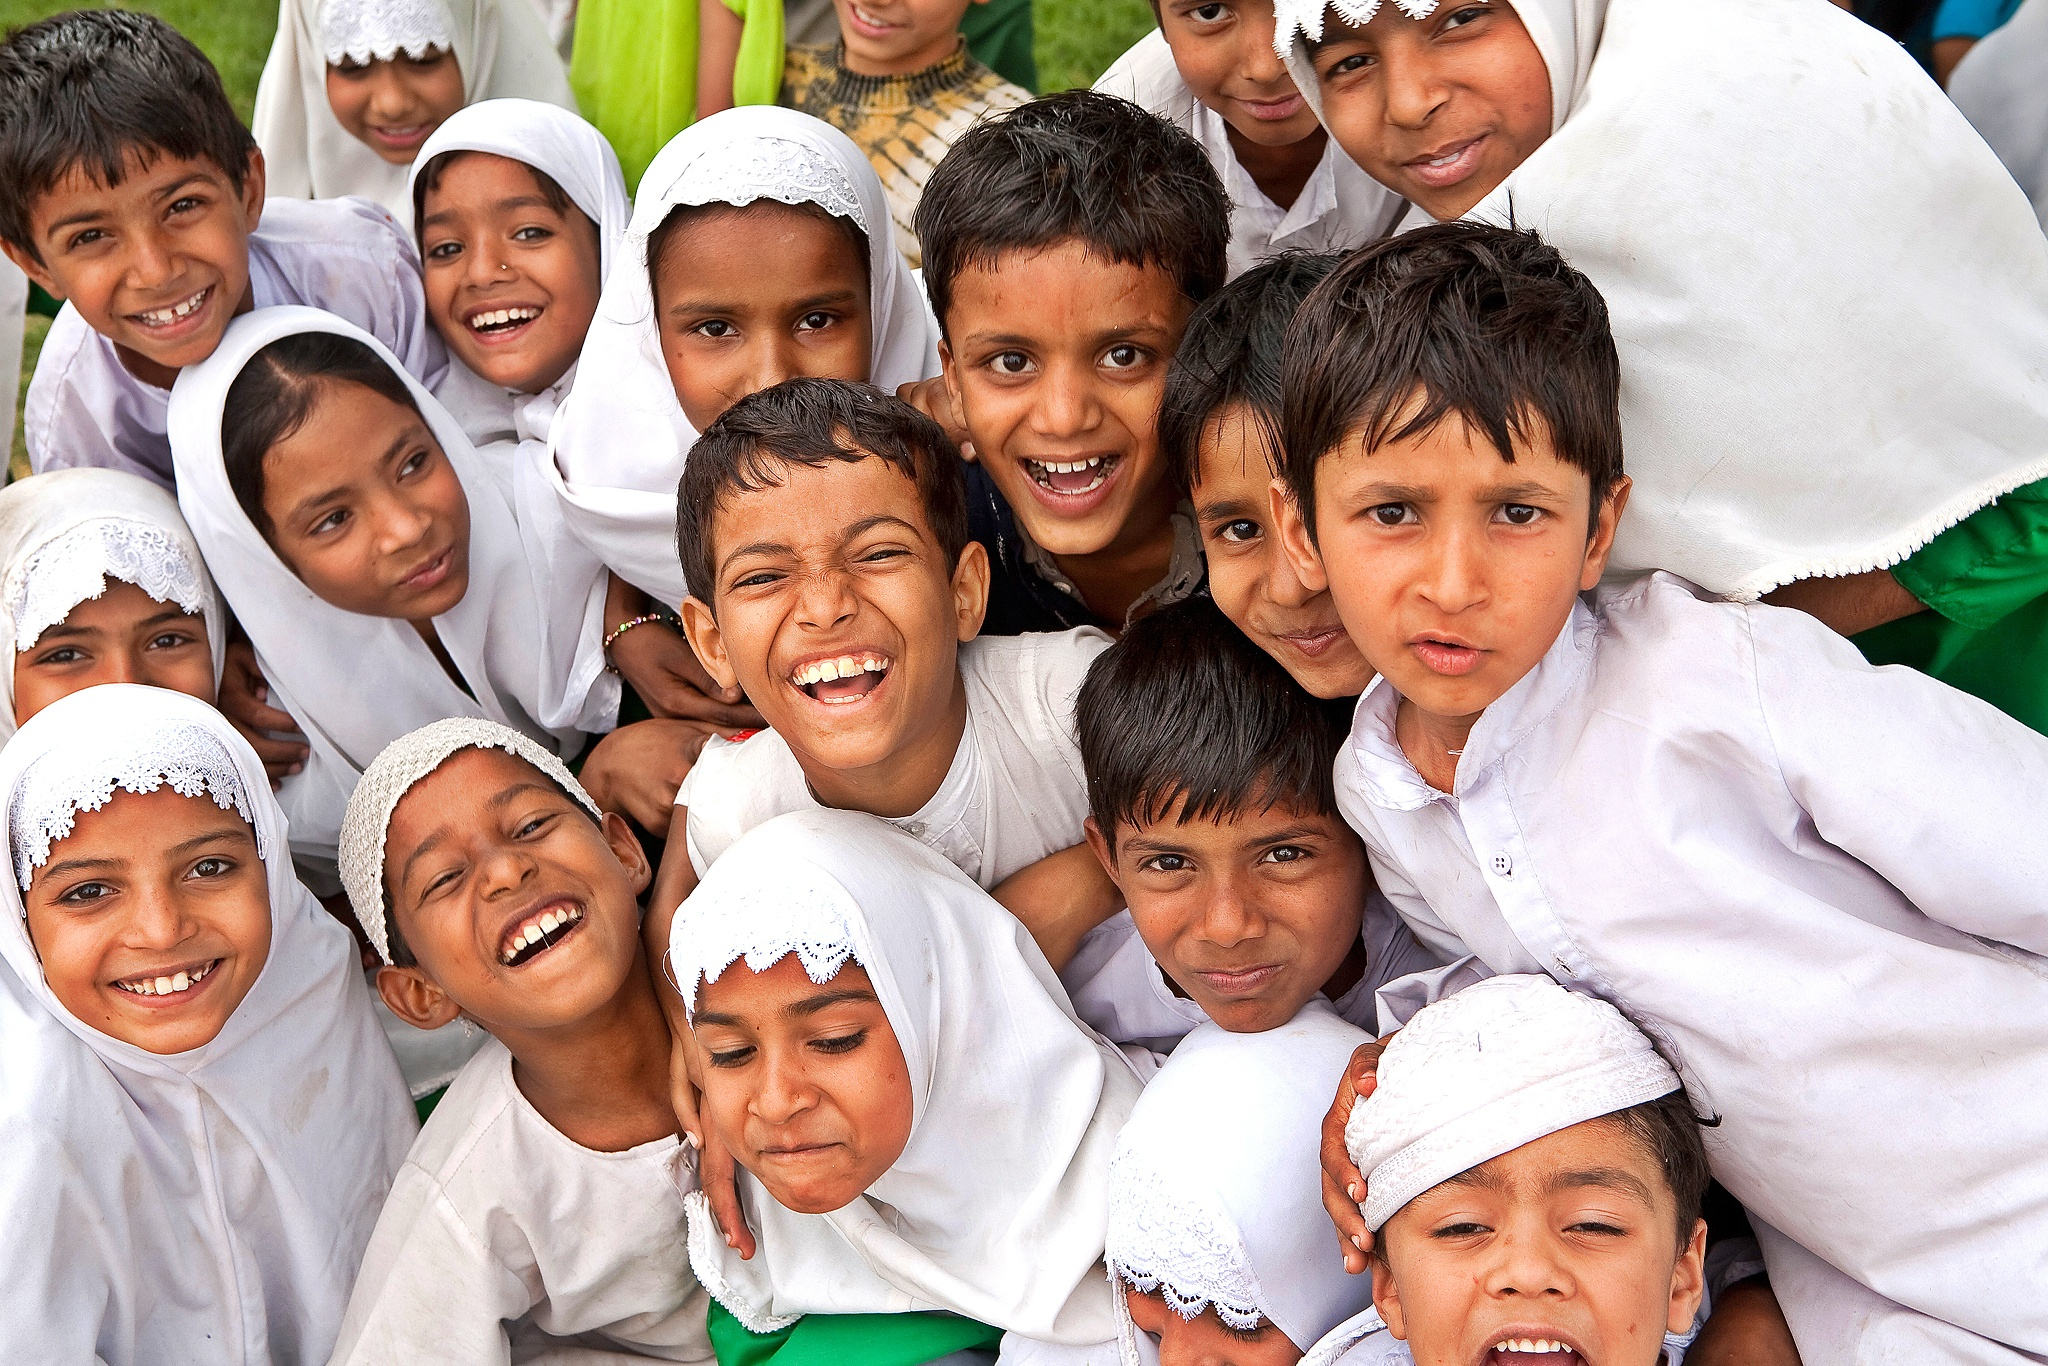 The Status of Children in Islam (Part 1 / 2)